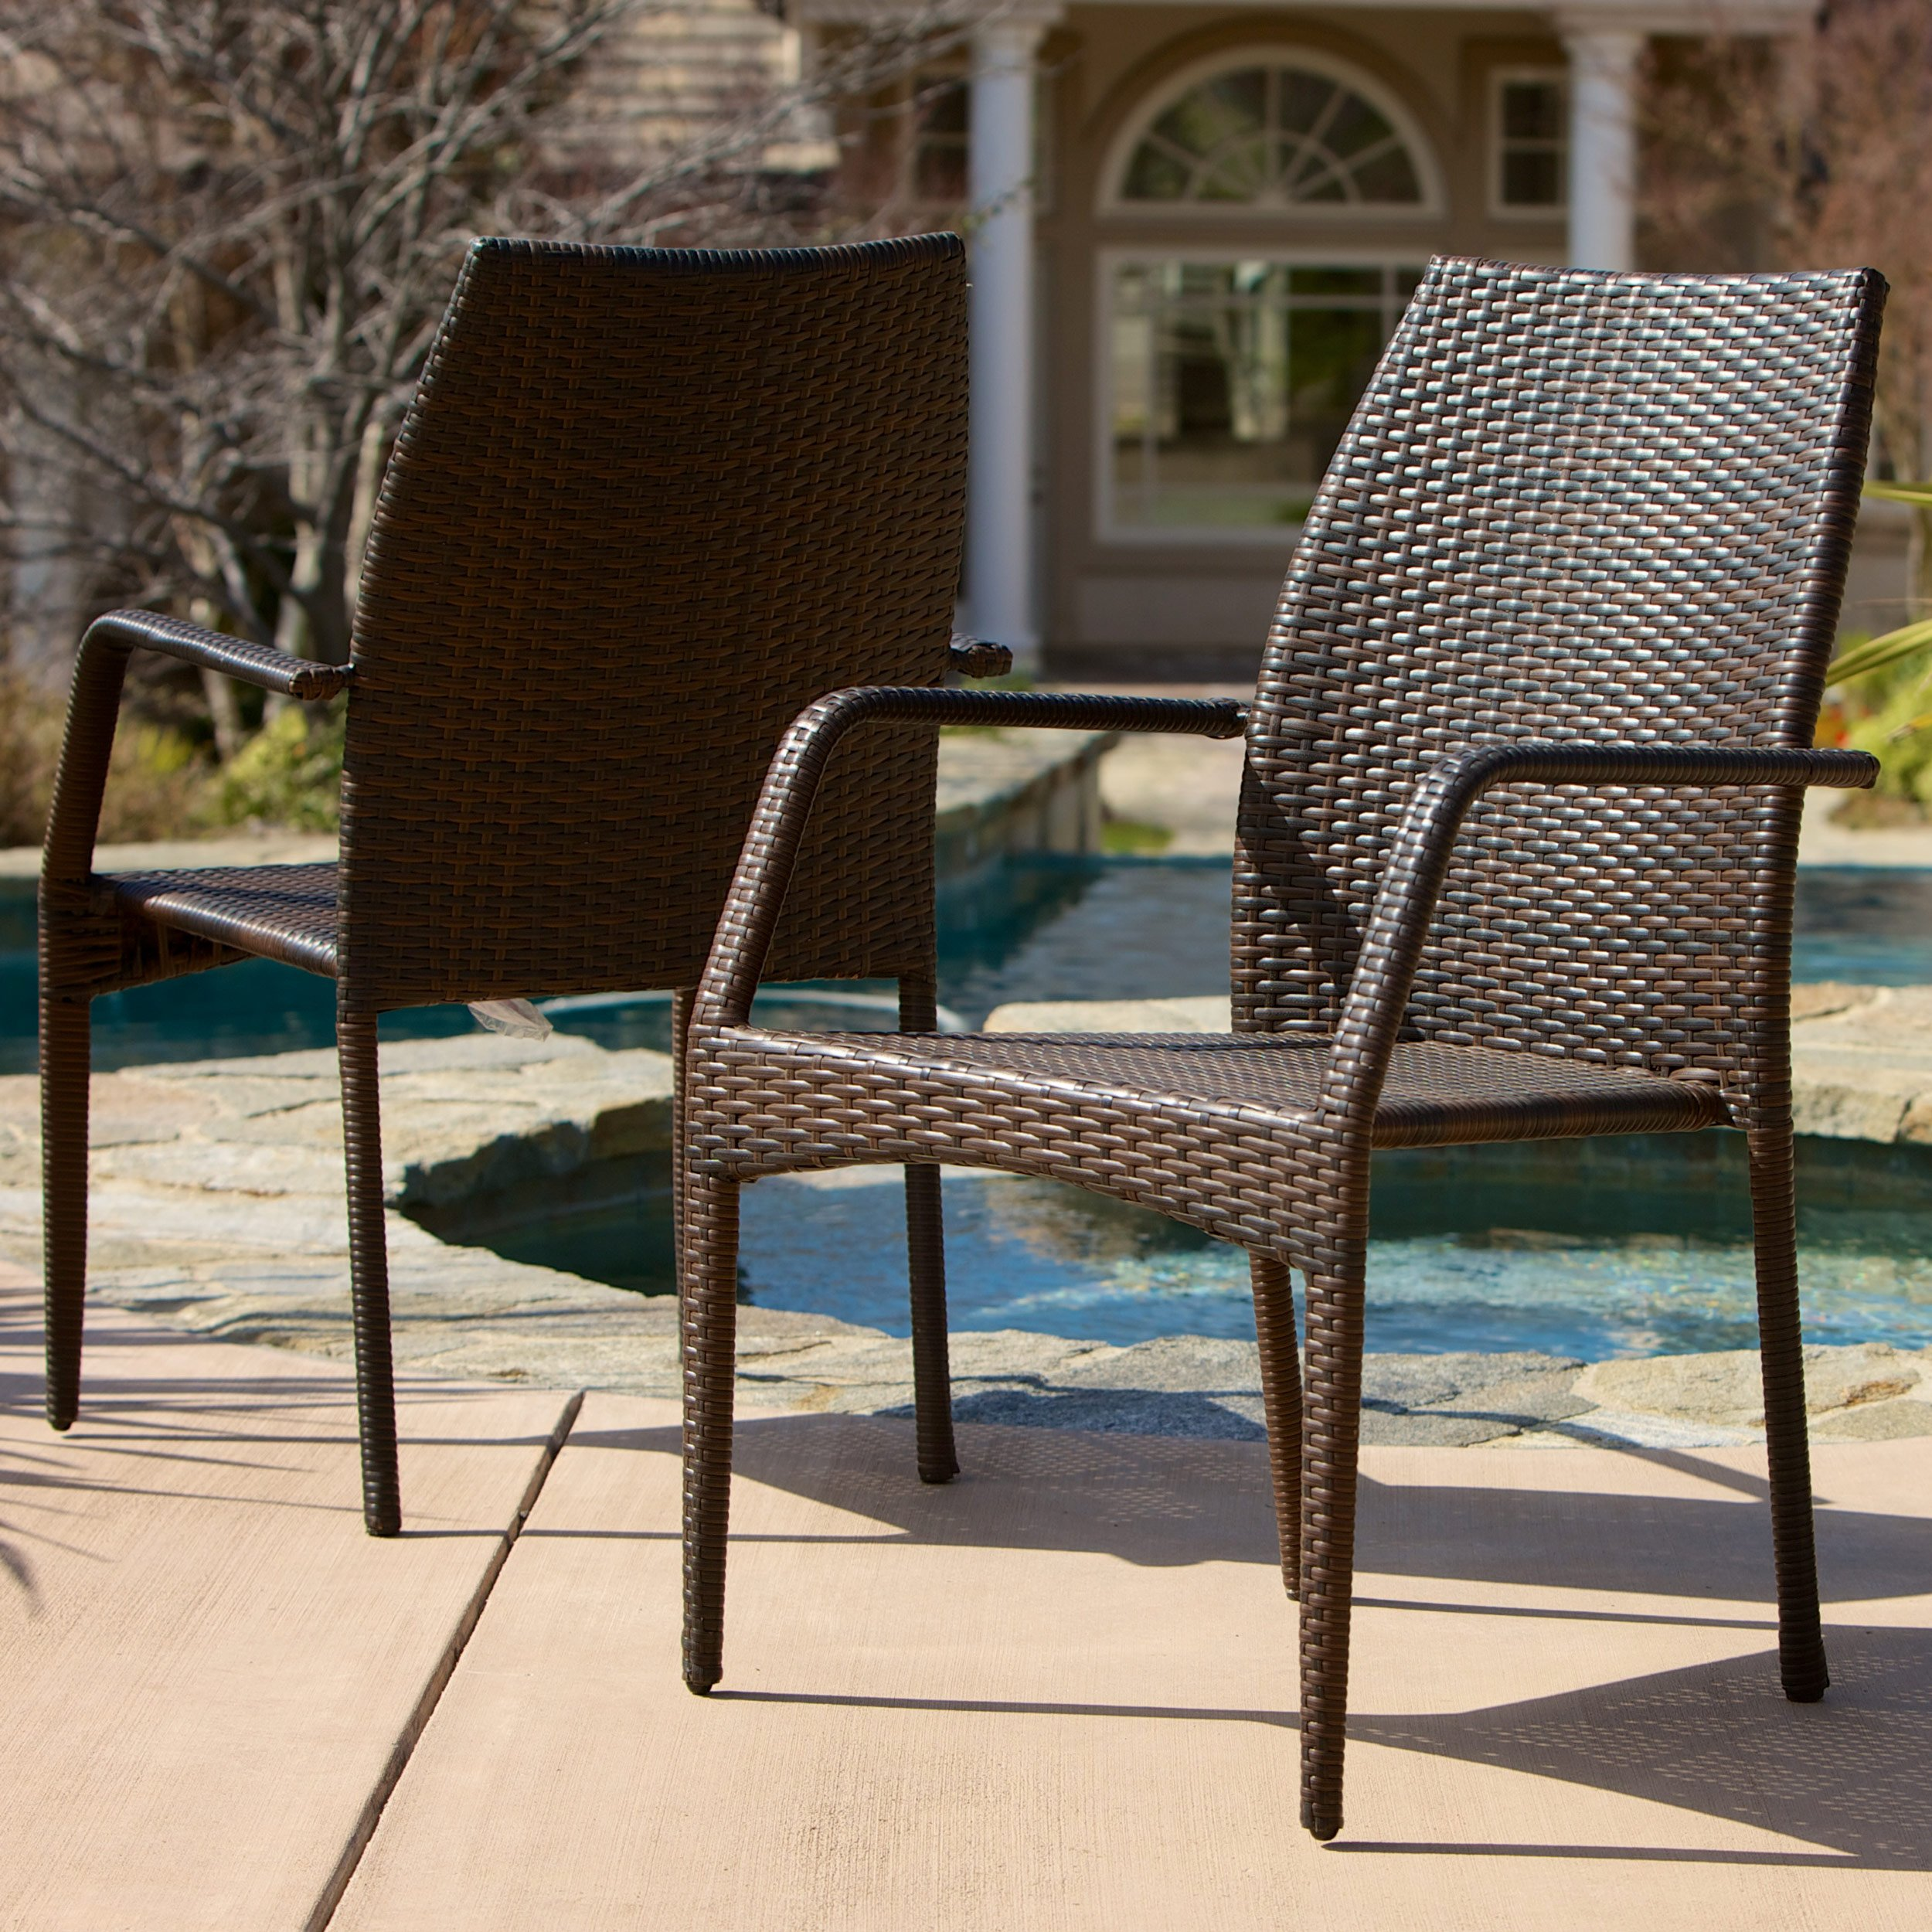 Christopher Knight Home Outdoor Wicker Stacking Chairs | Set of 2 | Perfect for Patio | in Multibrown by Christopher Knight Home